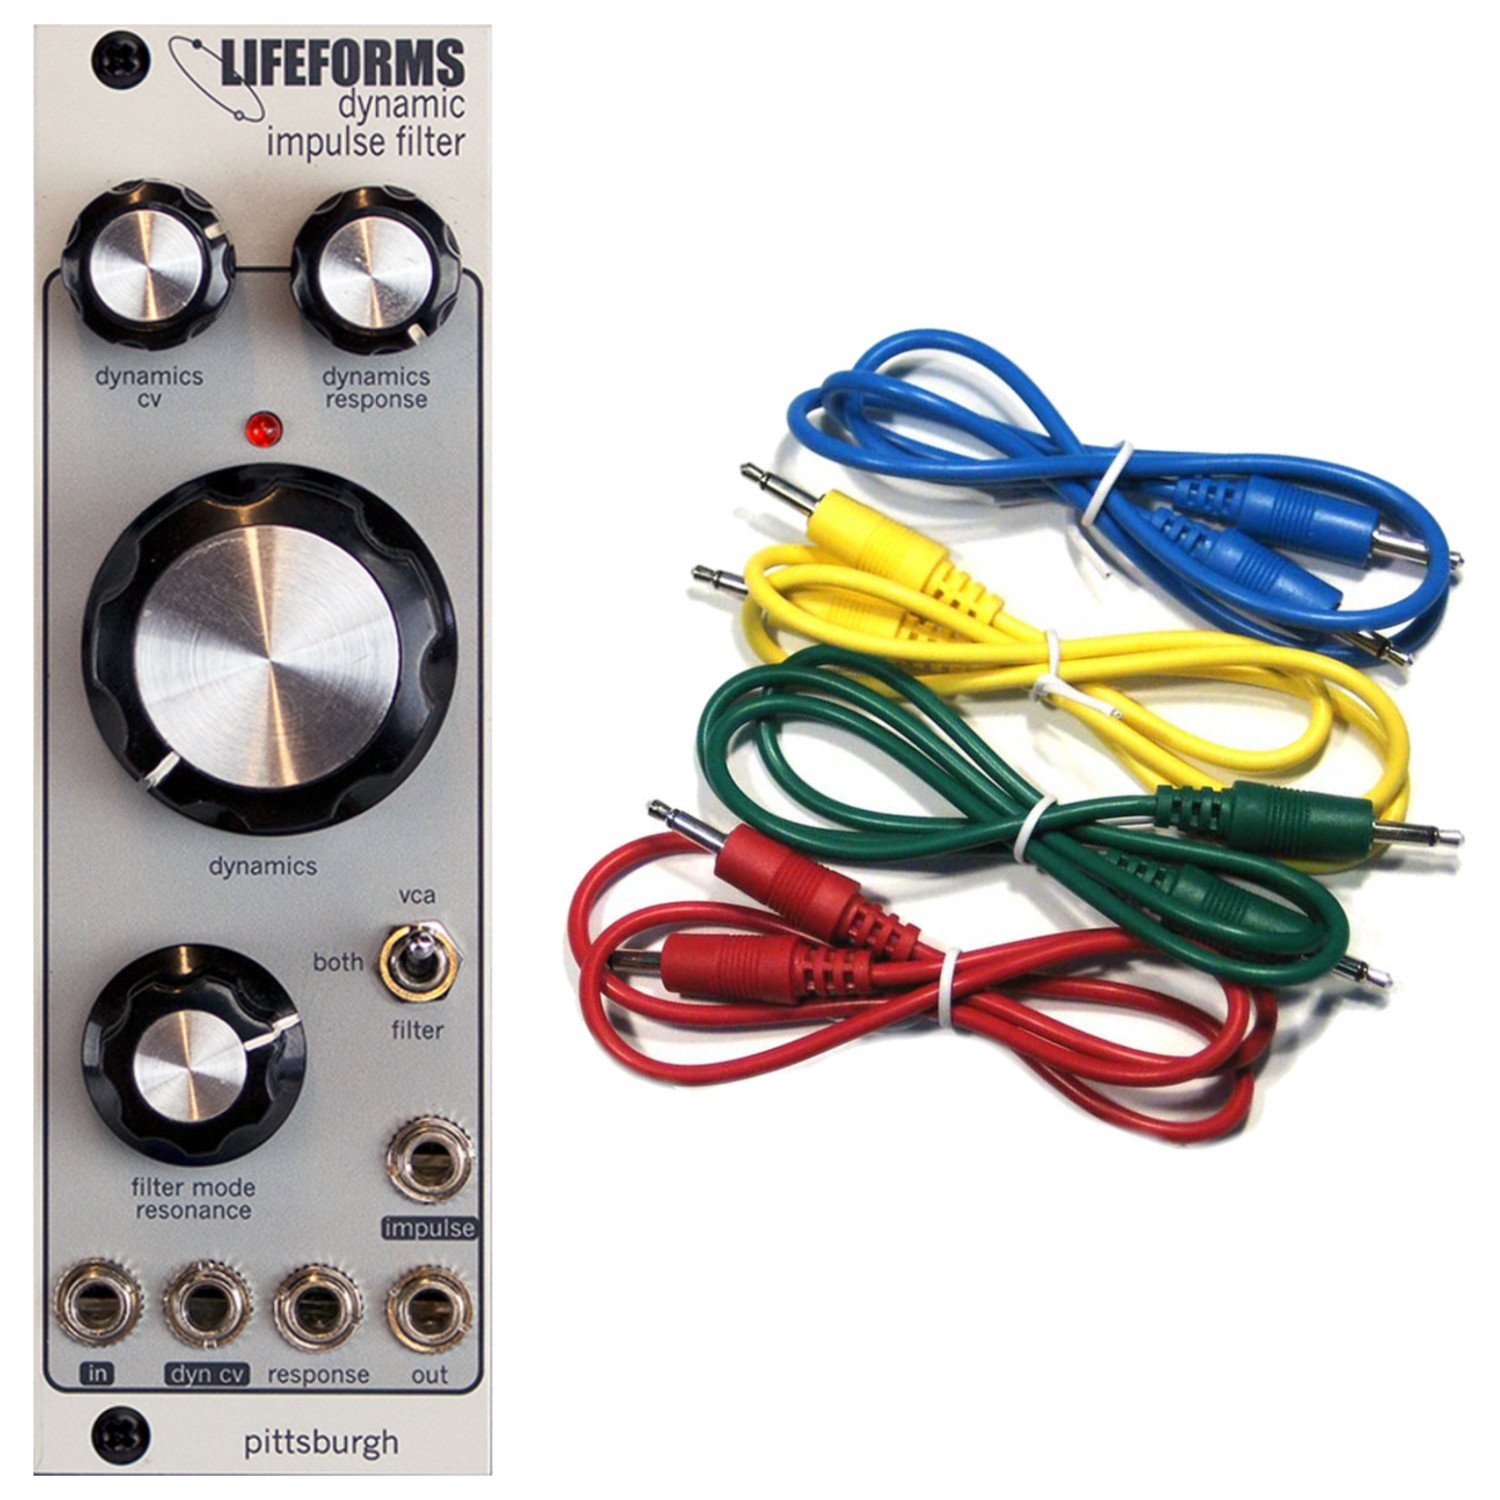 Pittsburgh Modular Lifeforms Dynamic Impulse Filter Synth Module w/ 4 Cables